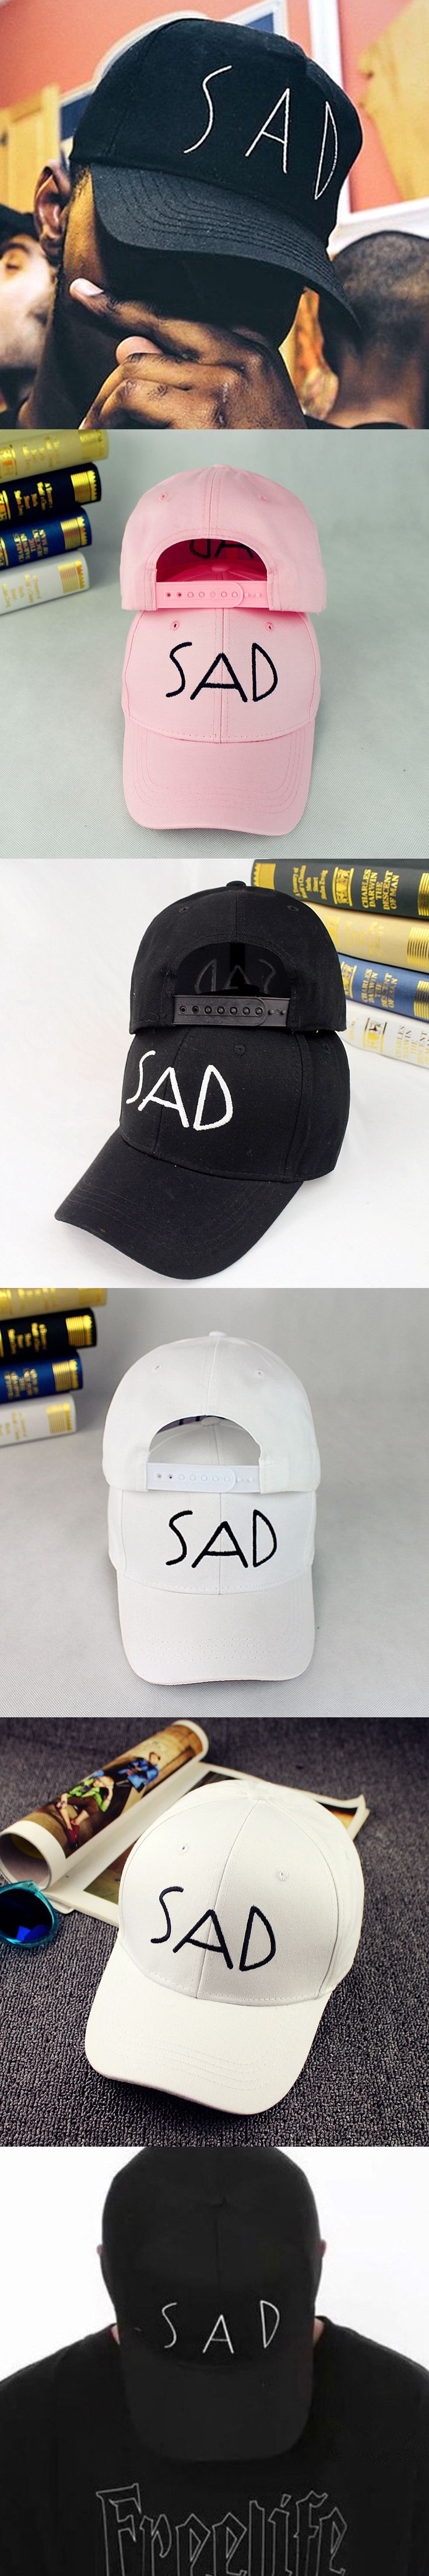 New baseball cap male woman pure color SAD letter embroidered cap leisure hat